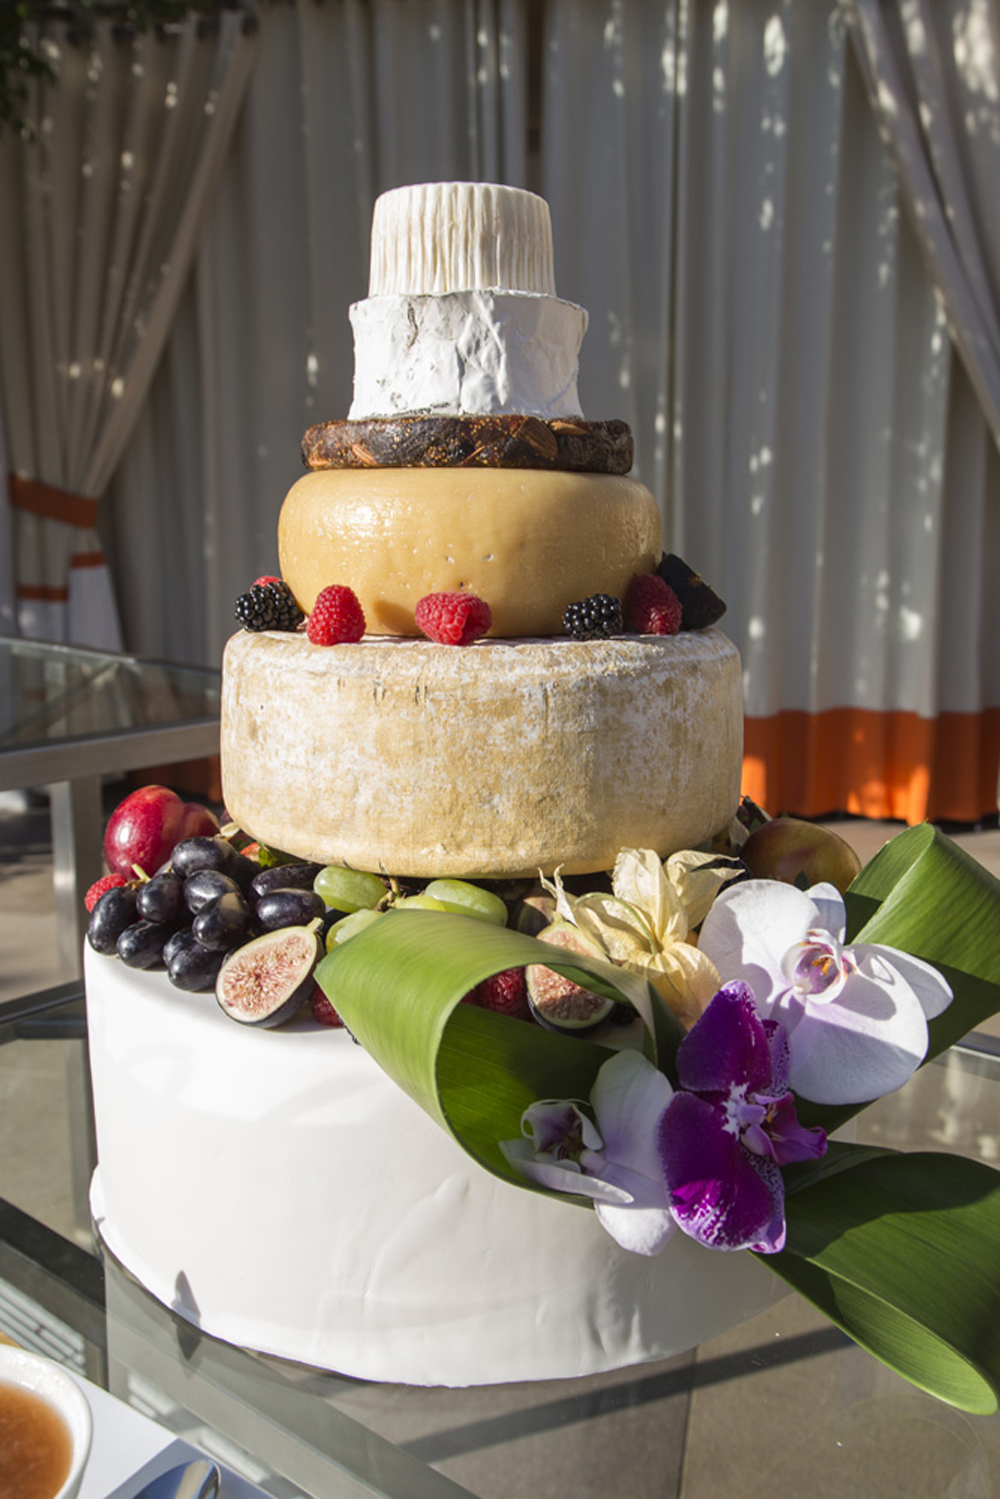 The Groom's Cake was constructed of cheese wheels stacked on each other, and dressed with fresh fruits and flowers.   Las Vegas Wedding at   Mandarin Oriental   |  Photo by  Altf Photography   |  Floral and Decor by  Naakiti Floral   |  Las Vegas Wedding Planner  Andrea Eppolito